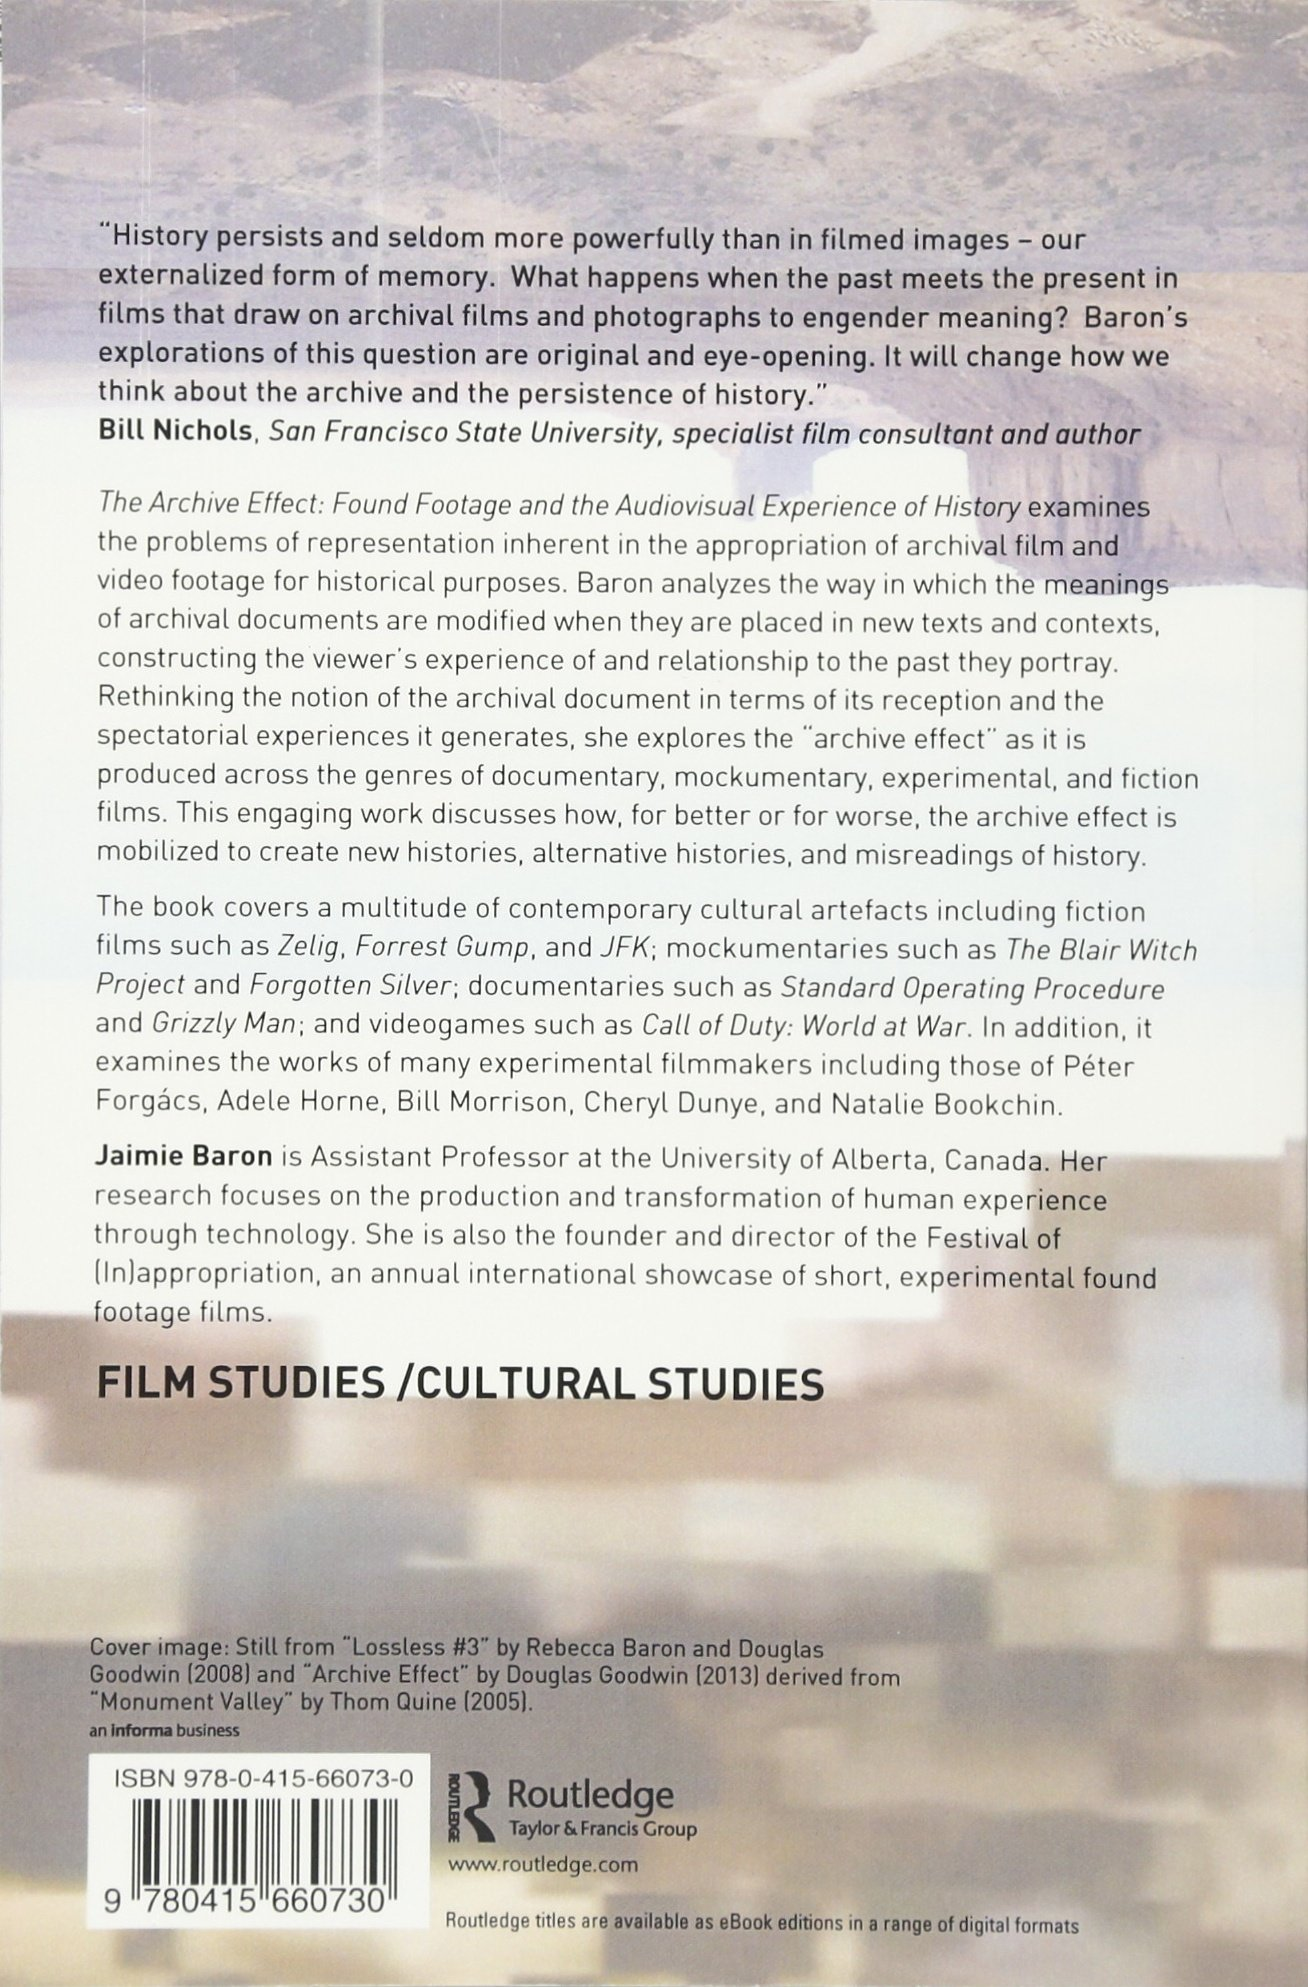 The Archive Effect: Found Footage And The Audiovisual Experience Of  History: Amazon: Jaimie Baron: 9780415660730: Books